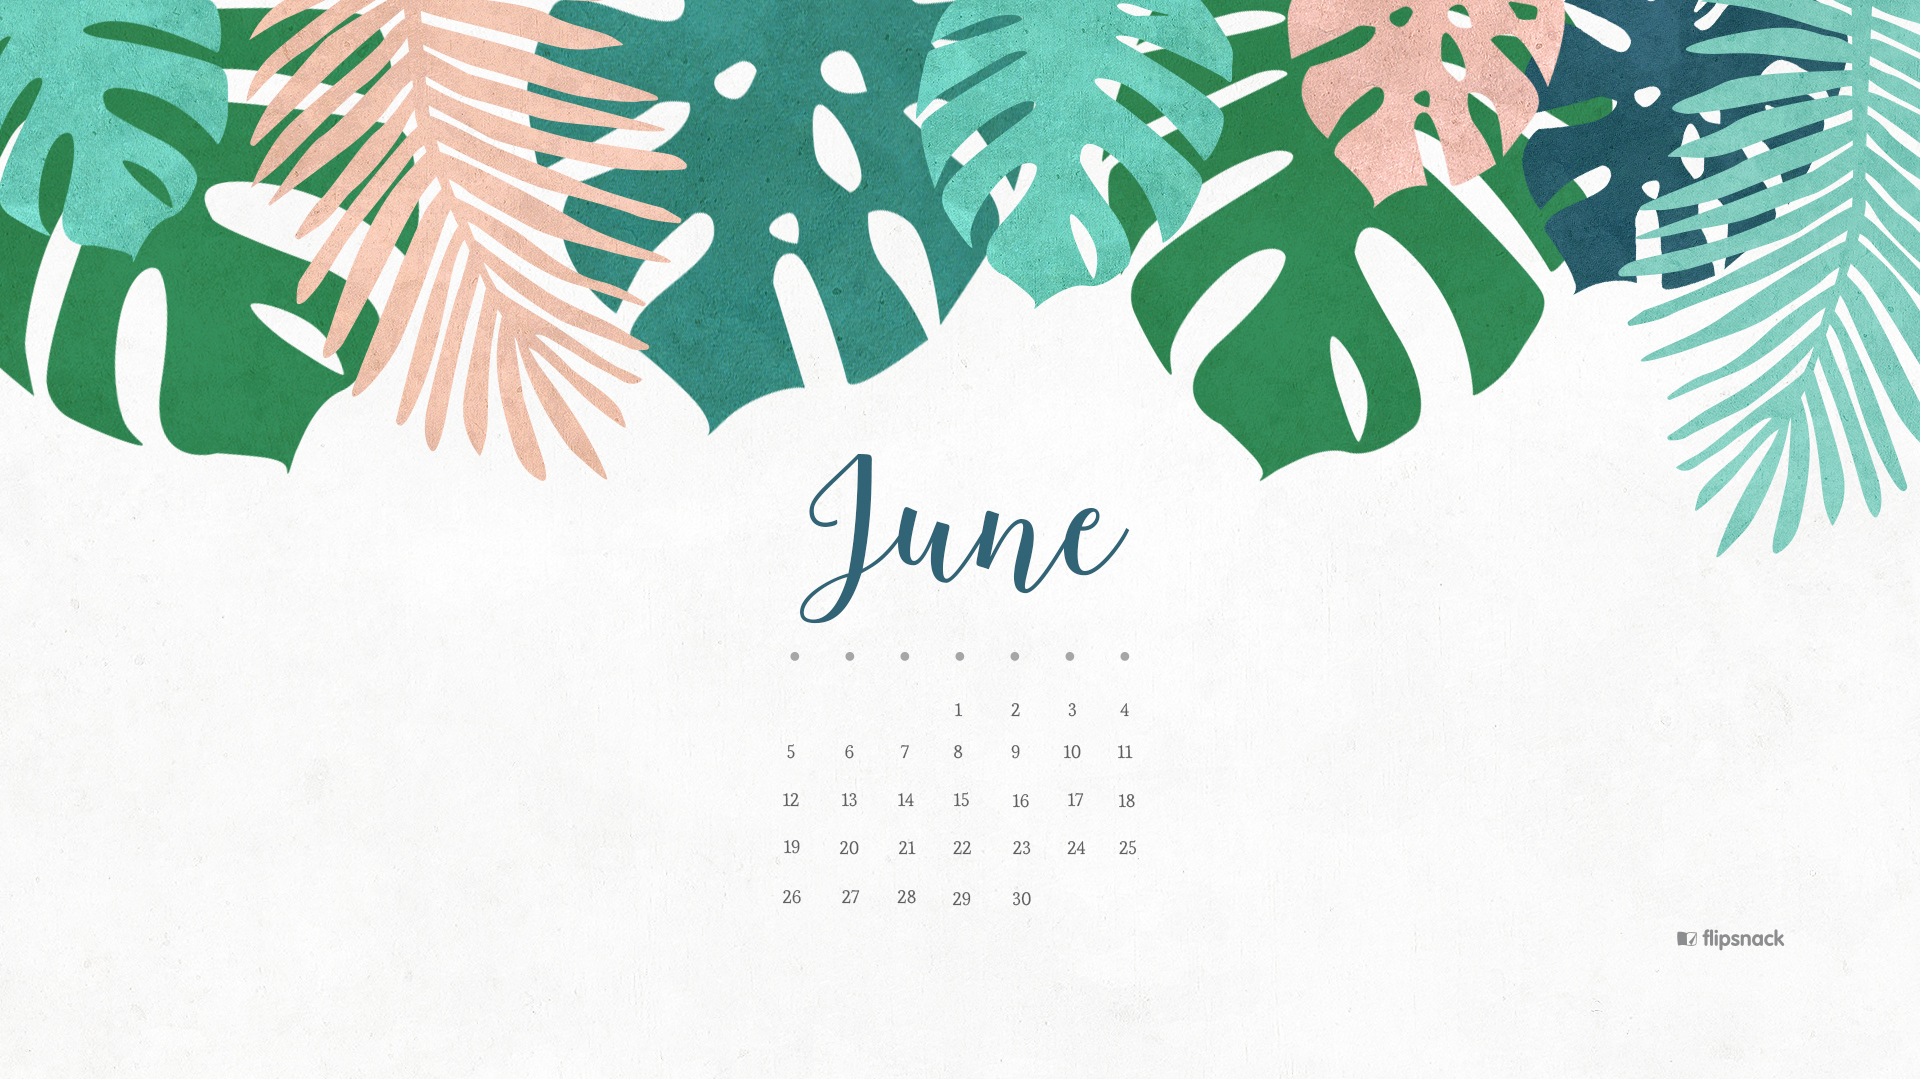 June 2016 Free Calendar Wallpaper Desktop Background